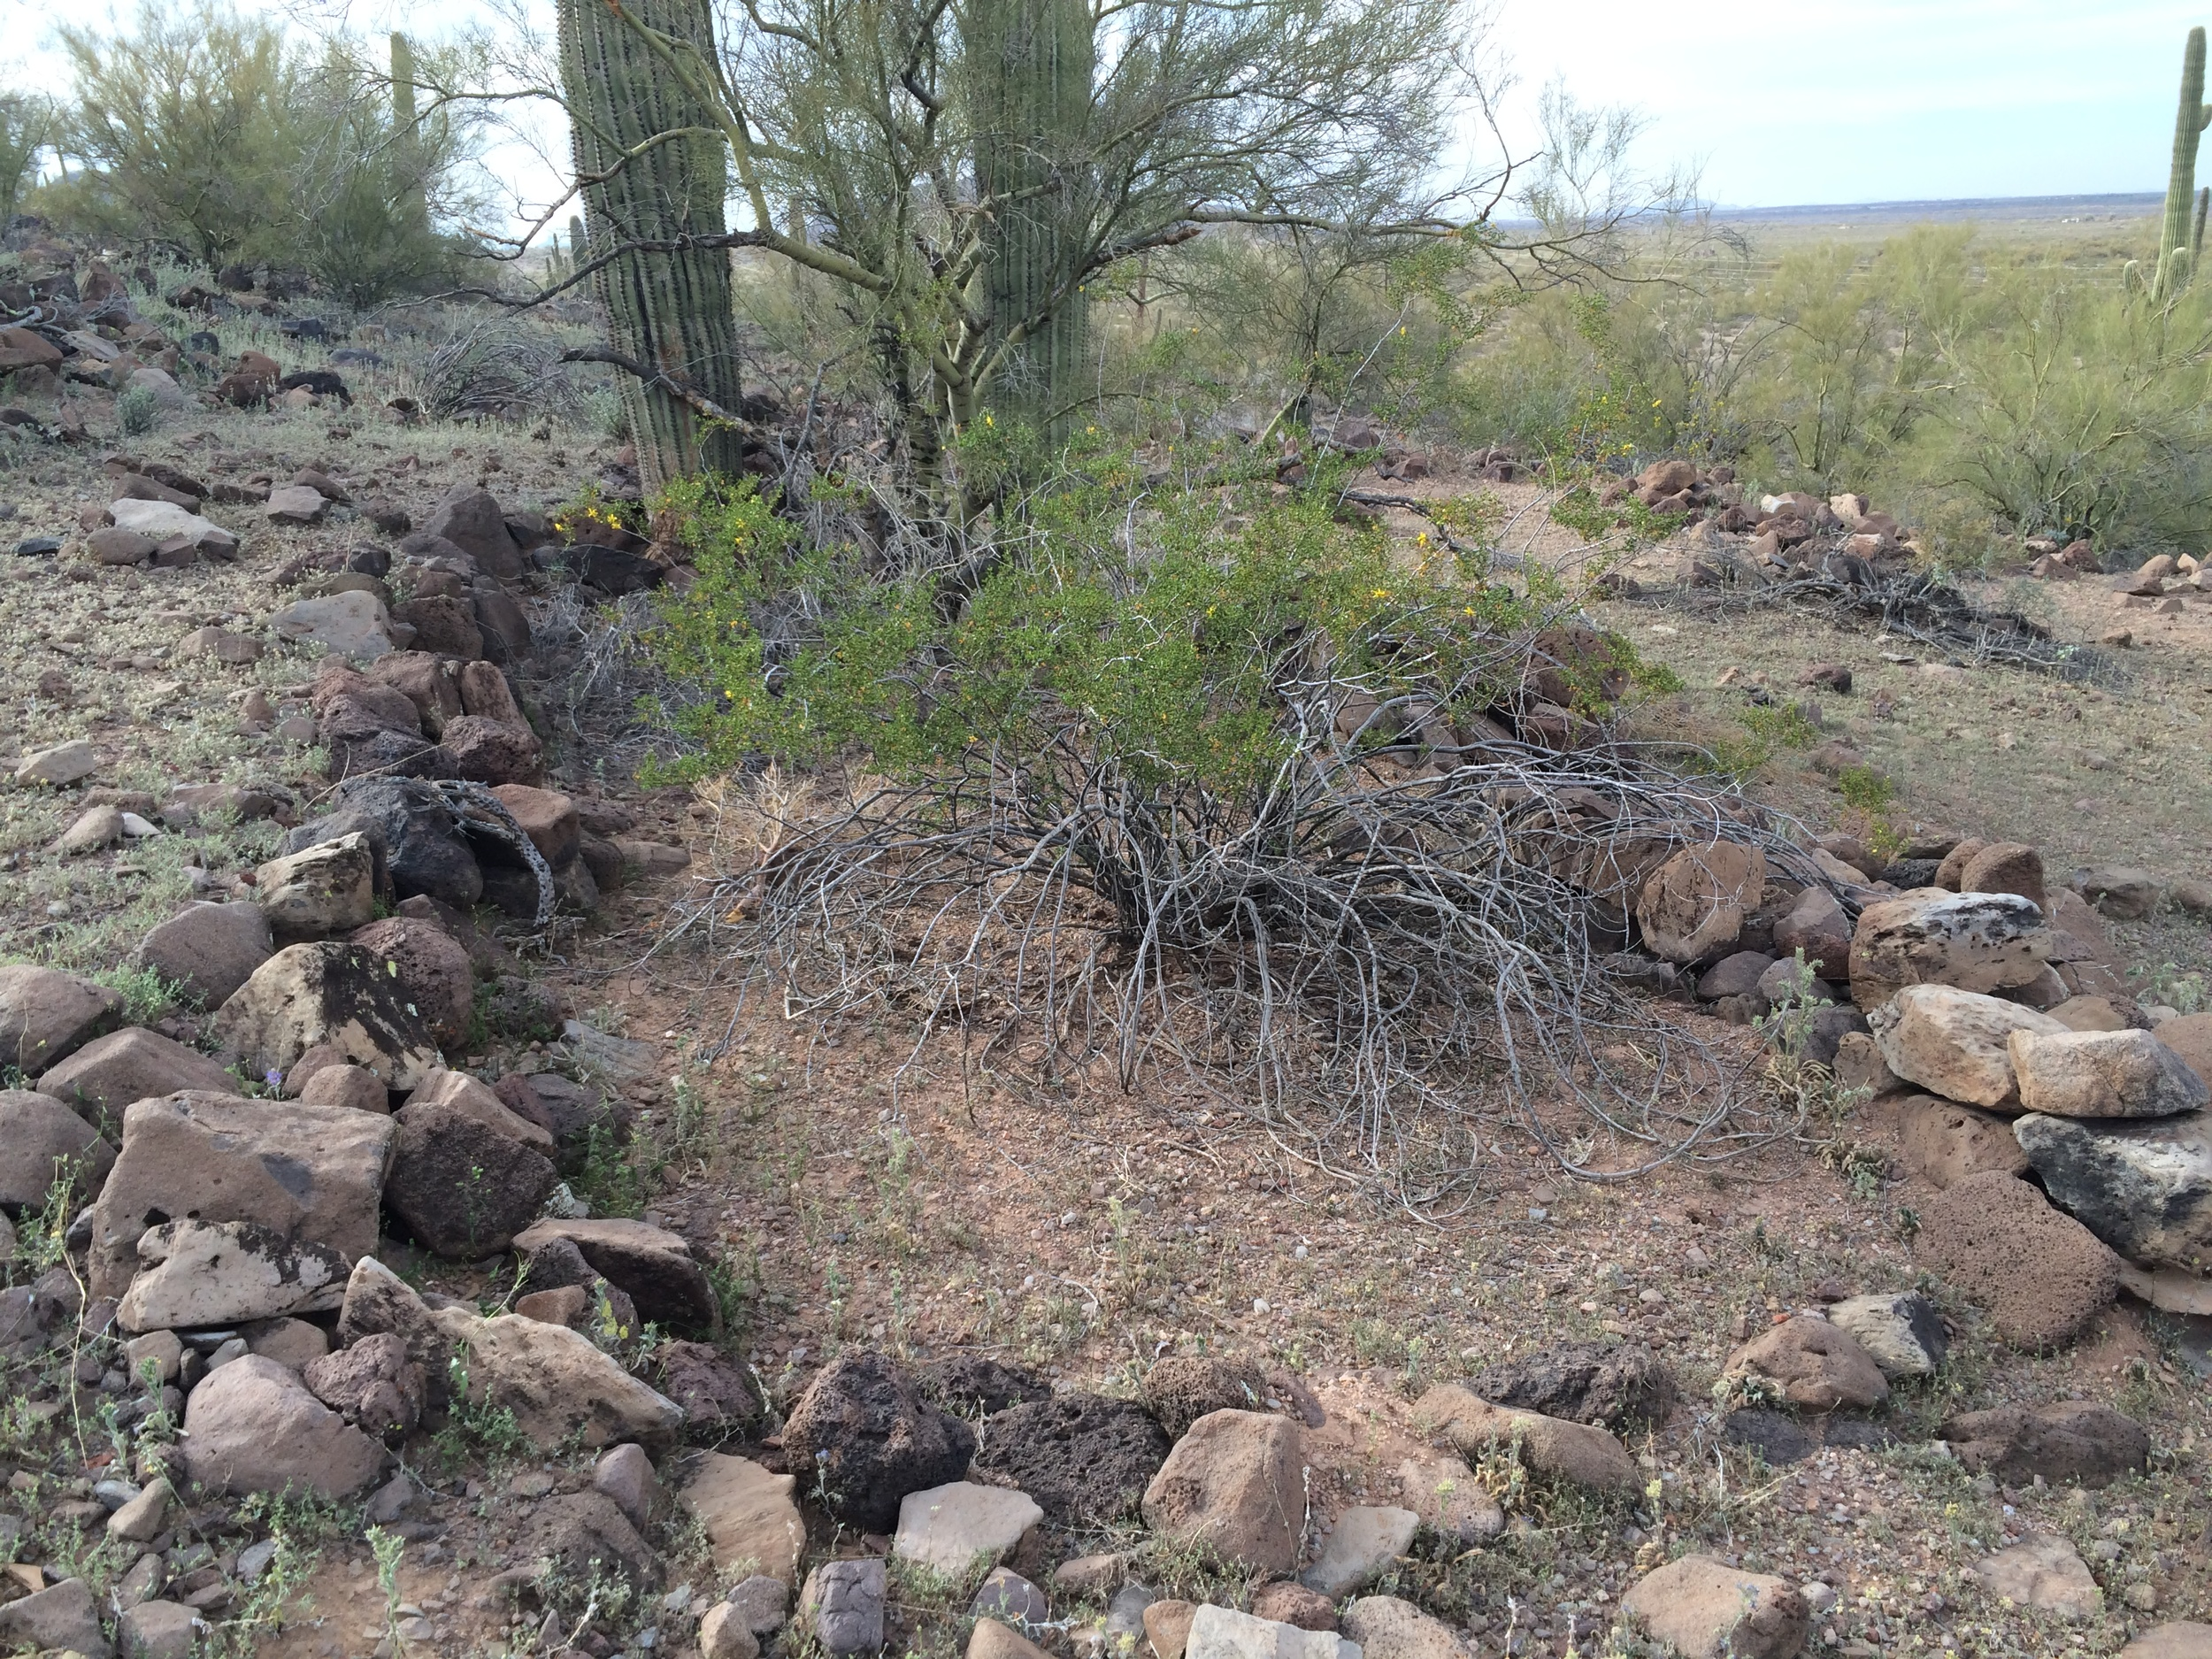 Creosote, palo verde, and saguaro growing among the ruins of an ancient Hohokam stone structure at Cerro Prieto, Los Robles Archaeological District, Ironwood Forest National Monument. Photo by  Fastily .